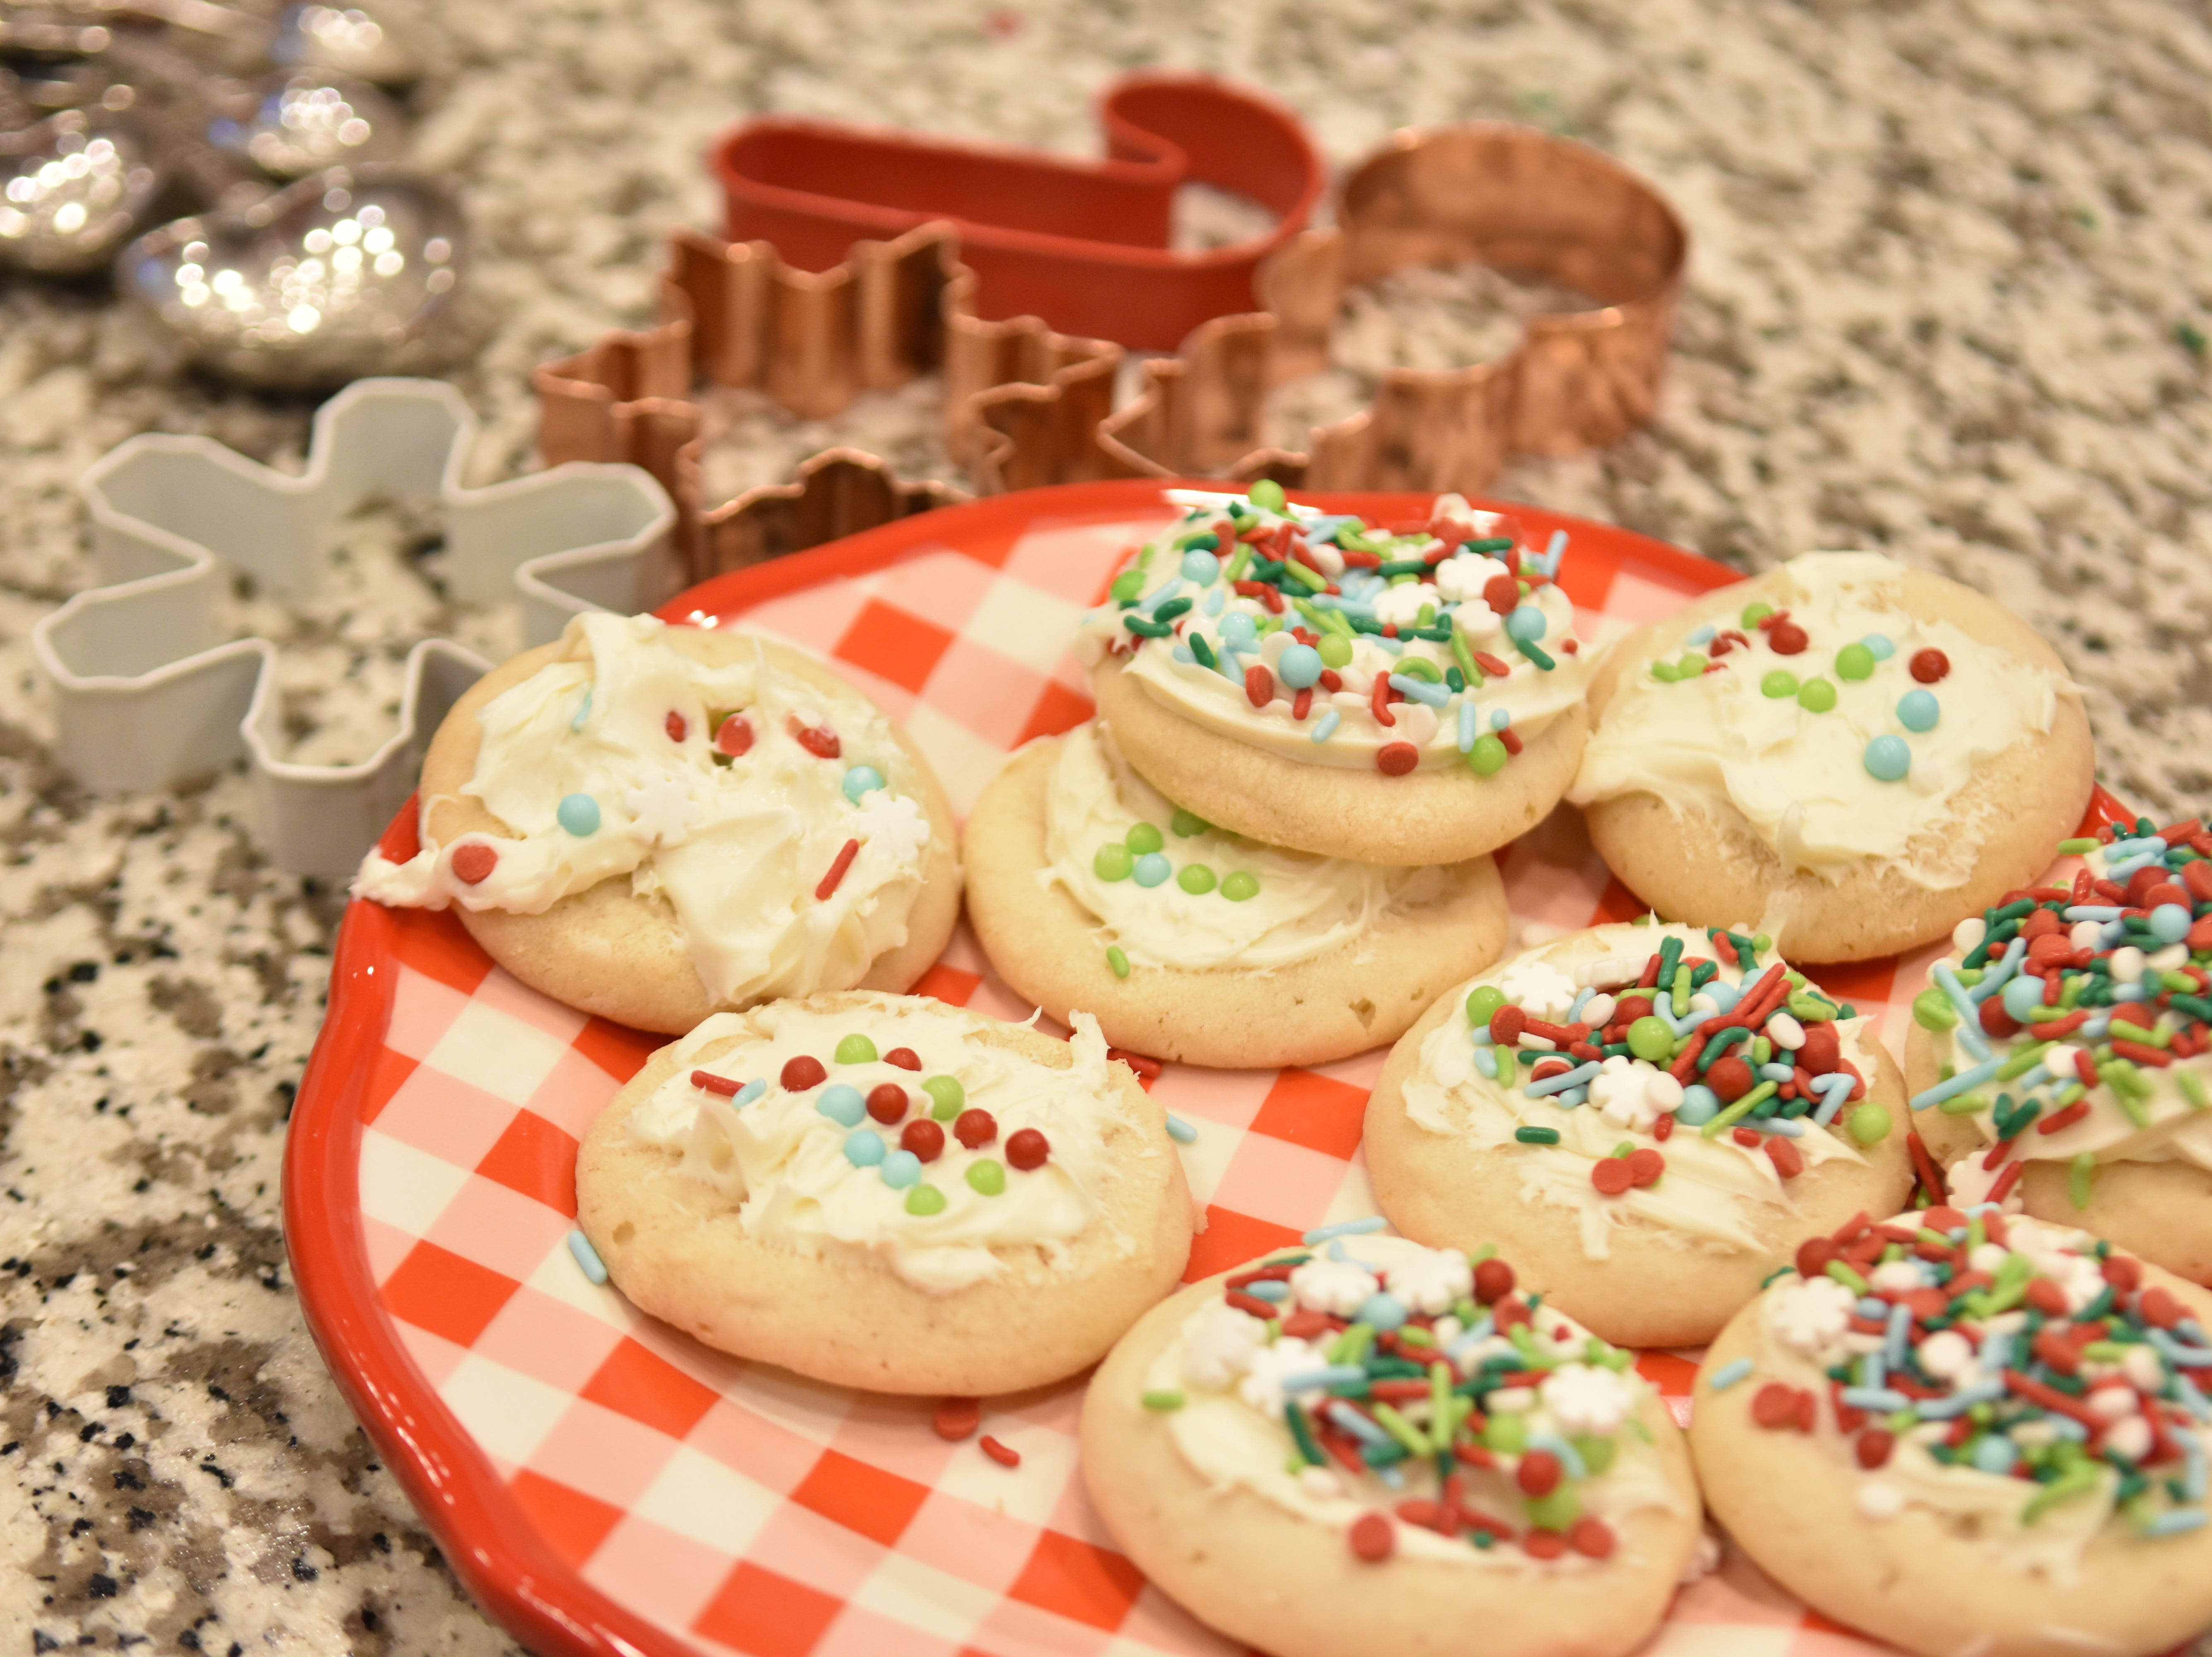 Christmas cookie fun facts: 1. Queen Elizabeth I invented gingerbread men.  While she didn't actually bake the cookies herself (she was a queen, after all), she did request that her royal bakers create gingerbread cookies shaped like visiting dignitaries in order to honor them. 2. We leave cookies for Santa because of the Great Depression. It wasn't standard practice to leave cookies and milk out for Santa Claus until the 1930s.  3. Cookies were originally made to test oven temperature. According to culinary historians, cookies as we know them today were first made not to eat but to test the temperature of an oven.  4. Santa Claus eats over 300 million cookies on Christmas Eve. Every Christmas Eve, Santa visits over 500 million homes where he encounters about a billion cookies. If you hypothesize that he takes about two bites of each cookie he is given, it means he eats a total of 336,150,386 cookies. From FoodandWine.com.